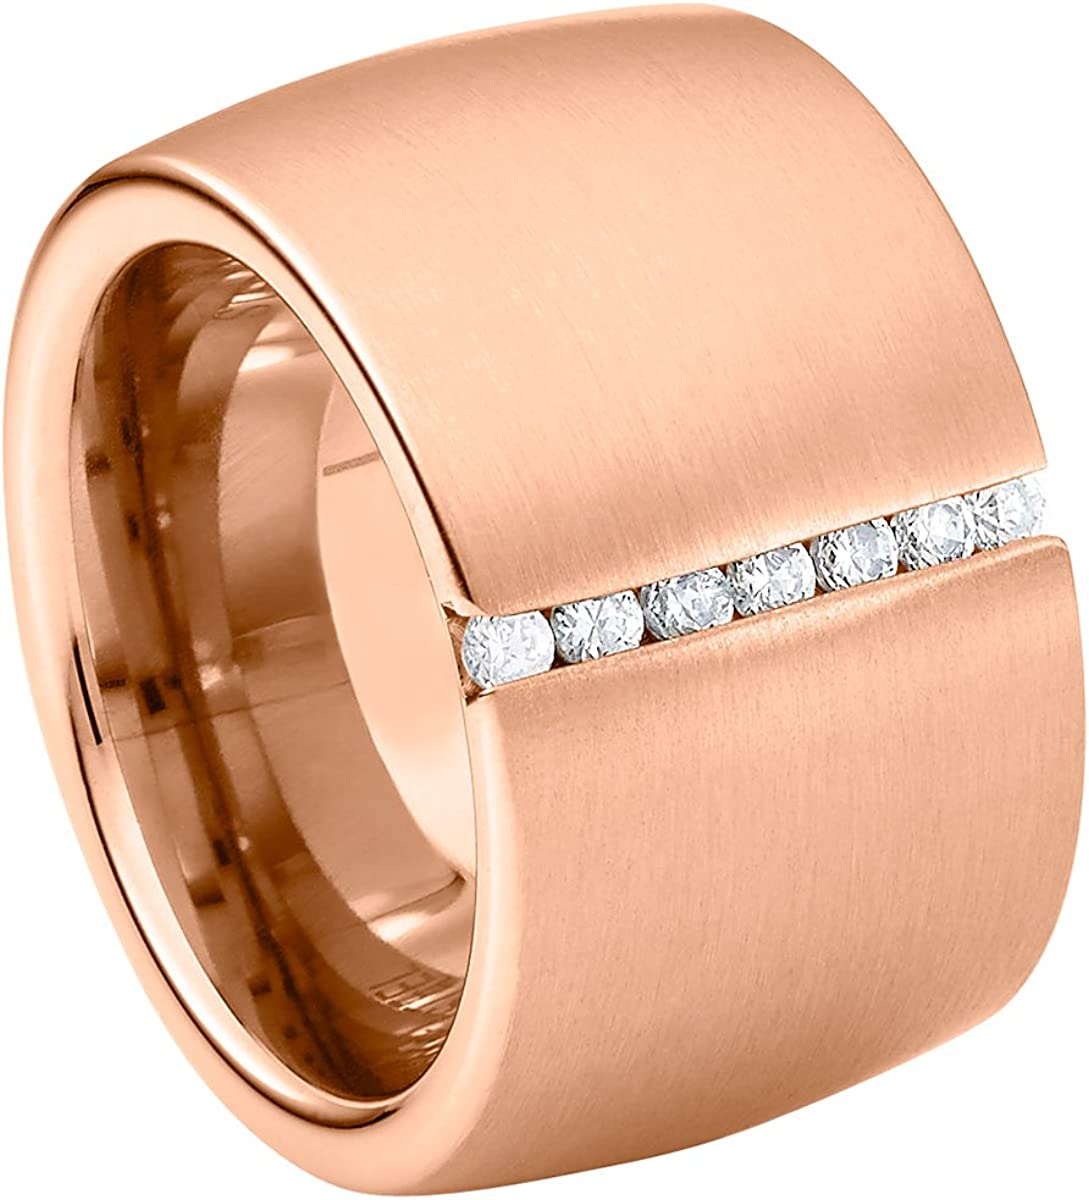 Heideman Ring Ladies Stainless Steel Lines Plata Pulida, Oro o Oro Rosa Colores Mate Ladies Ring para Mujeres con Swarovski Stone Zirconia Blanco Talla Brillante 1,5mm